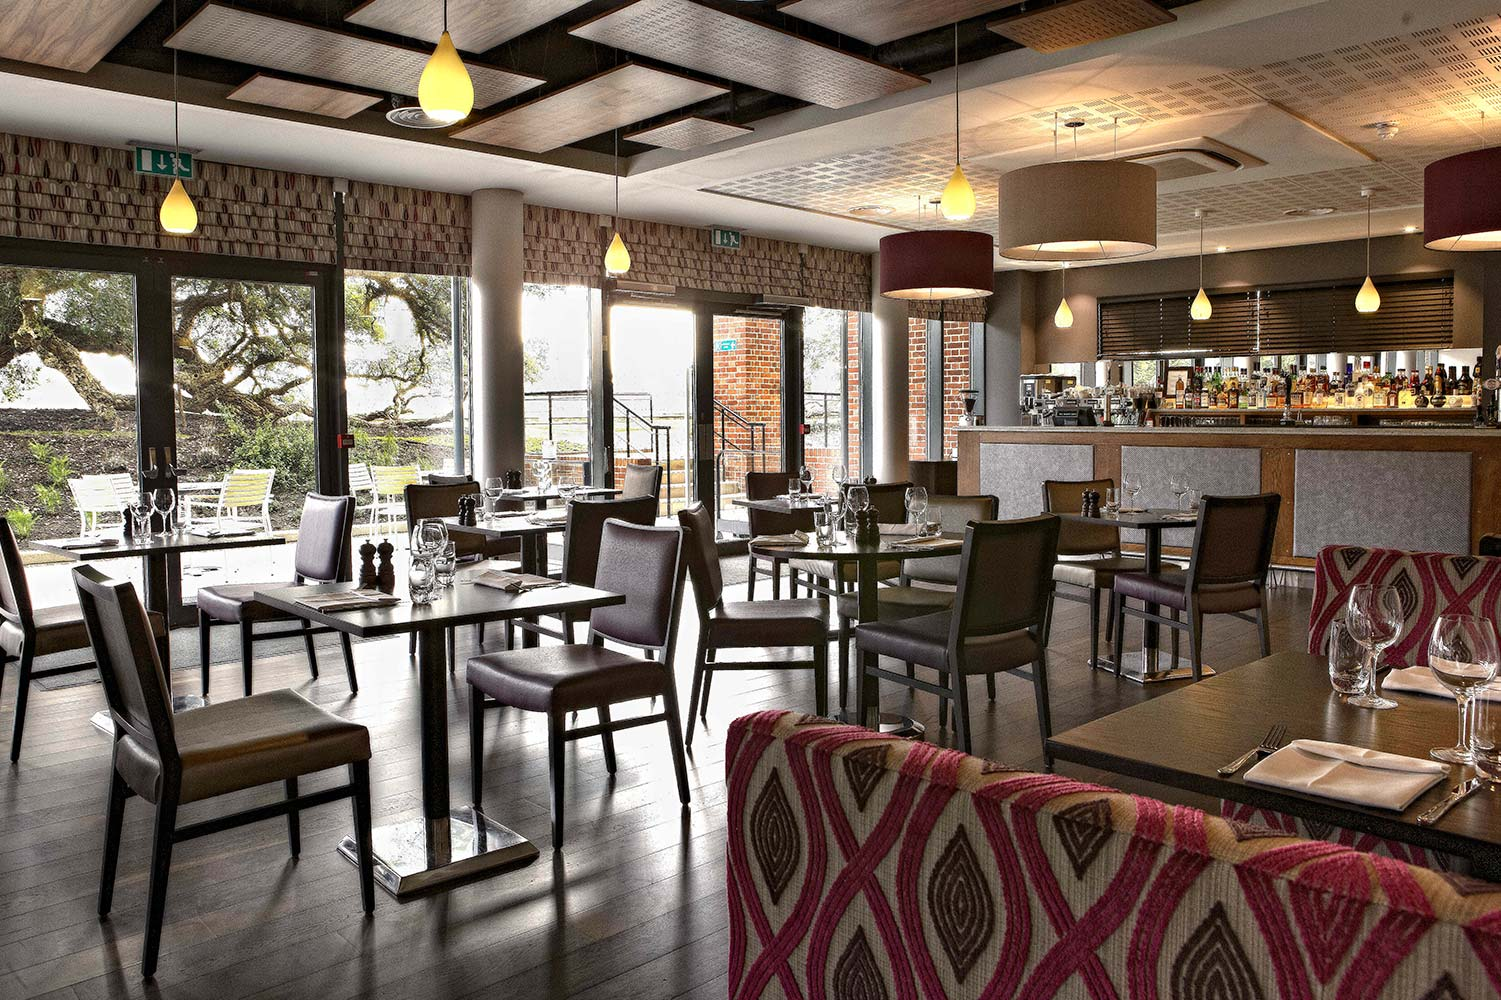 Dinner and a show with free prosecco lakeside theatre for Hotel design uk